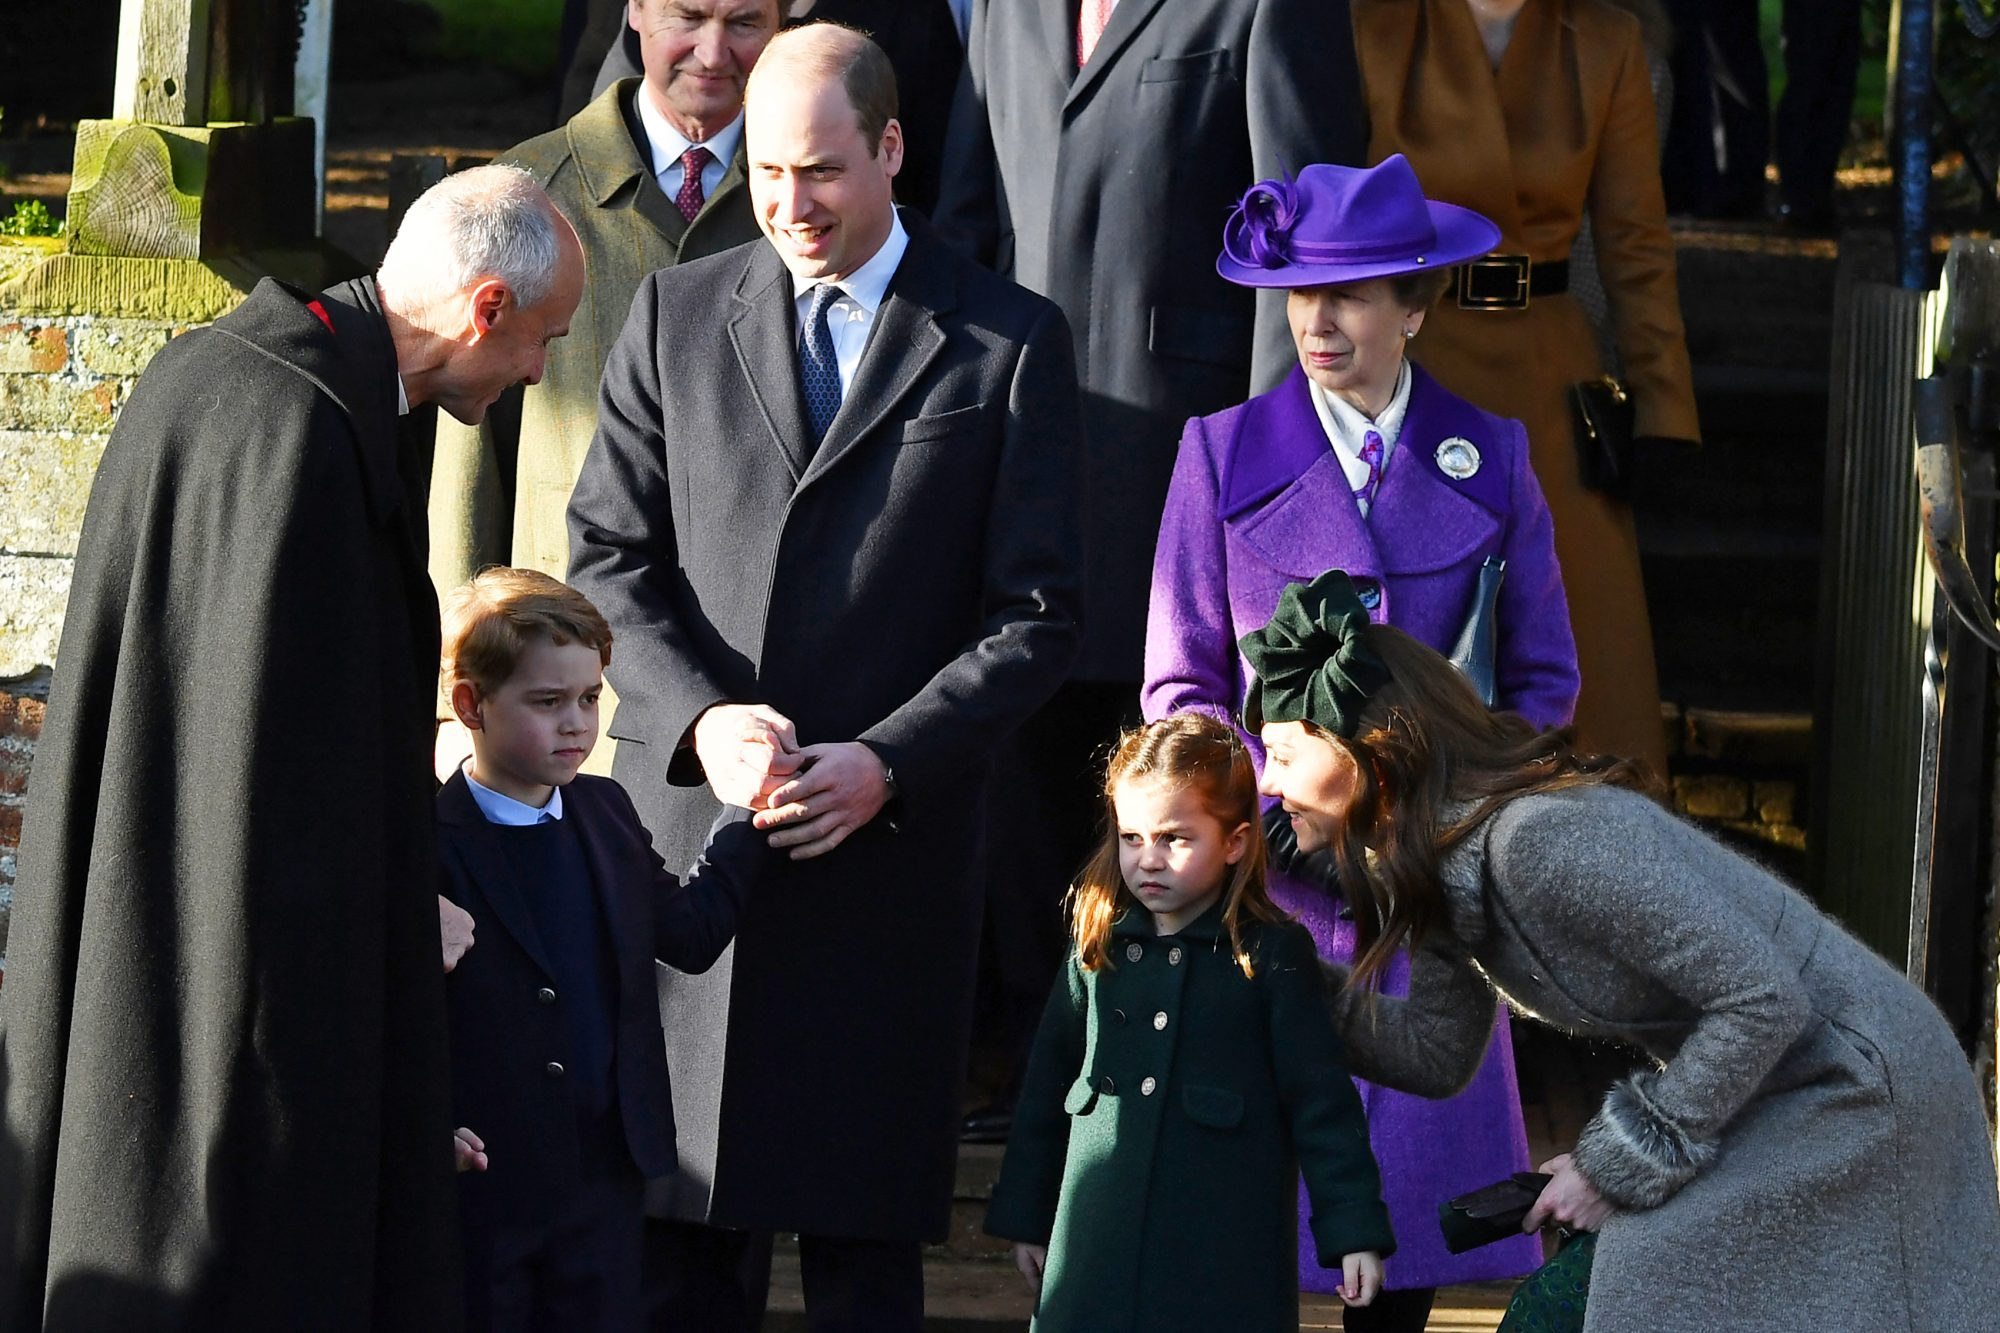 (L-R) Britain's Prince George of Cambridge, Britain's Prince William, Duke of Cambridge, Britain's Princess Charlotte of Cambridge, Britain's Princess Anne, Princess Royal and Britain's Catherine, Duchess of Cambridge leave after the Royal Family's traditional Christmas Day service at St Mary Magdalene Church in Sandringham, Norfolk, eastern England, on December 25, 2019. (Photo by Ben STANSALL / AFP) (Photo by BEN STANSALL/AFP via Getty Images)